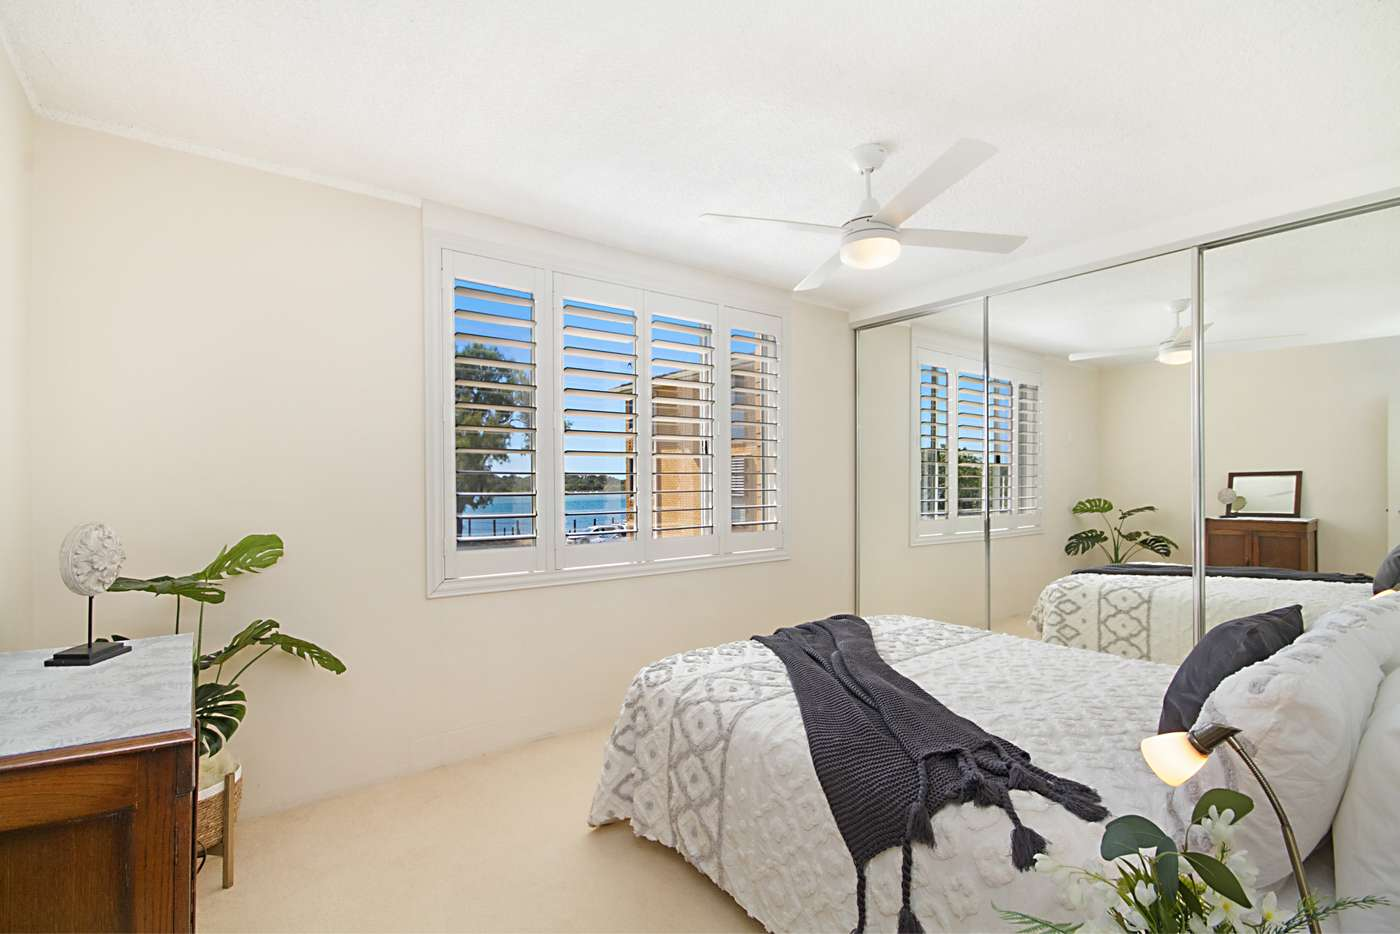 Sixth view of Homely unit listing, 10/21 Ivory Crescent, Tweed Heads NSW 2485